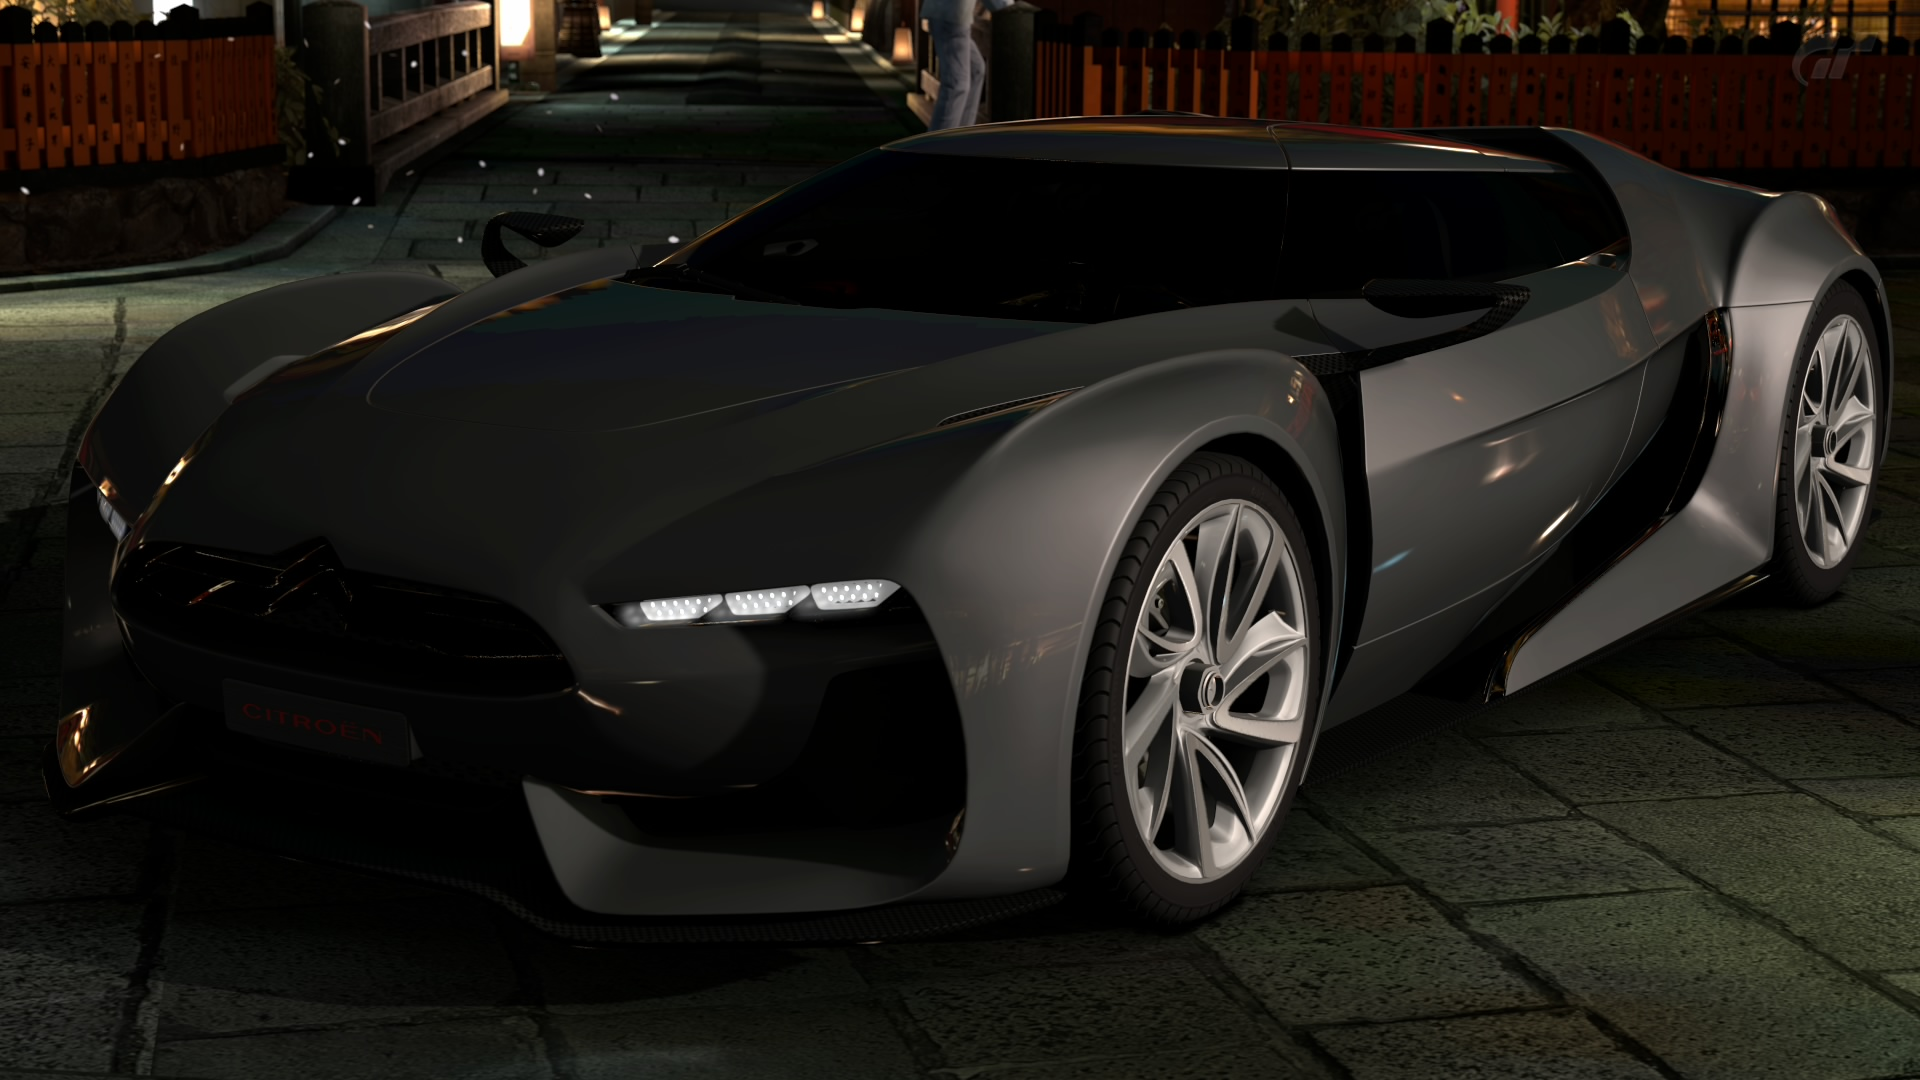 Gt Citroen Road Car Price